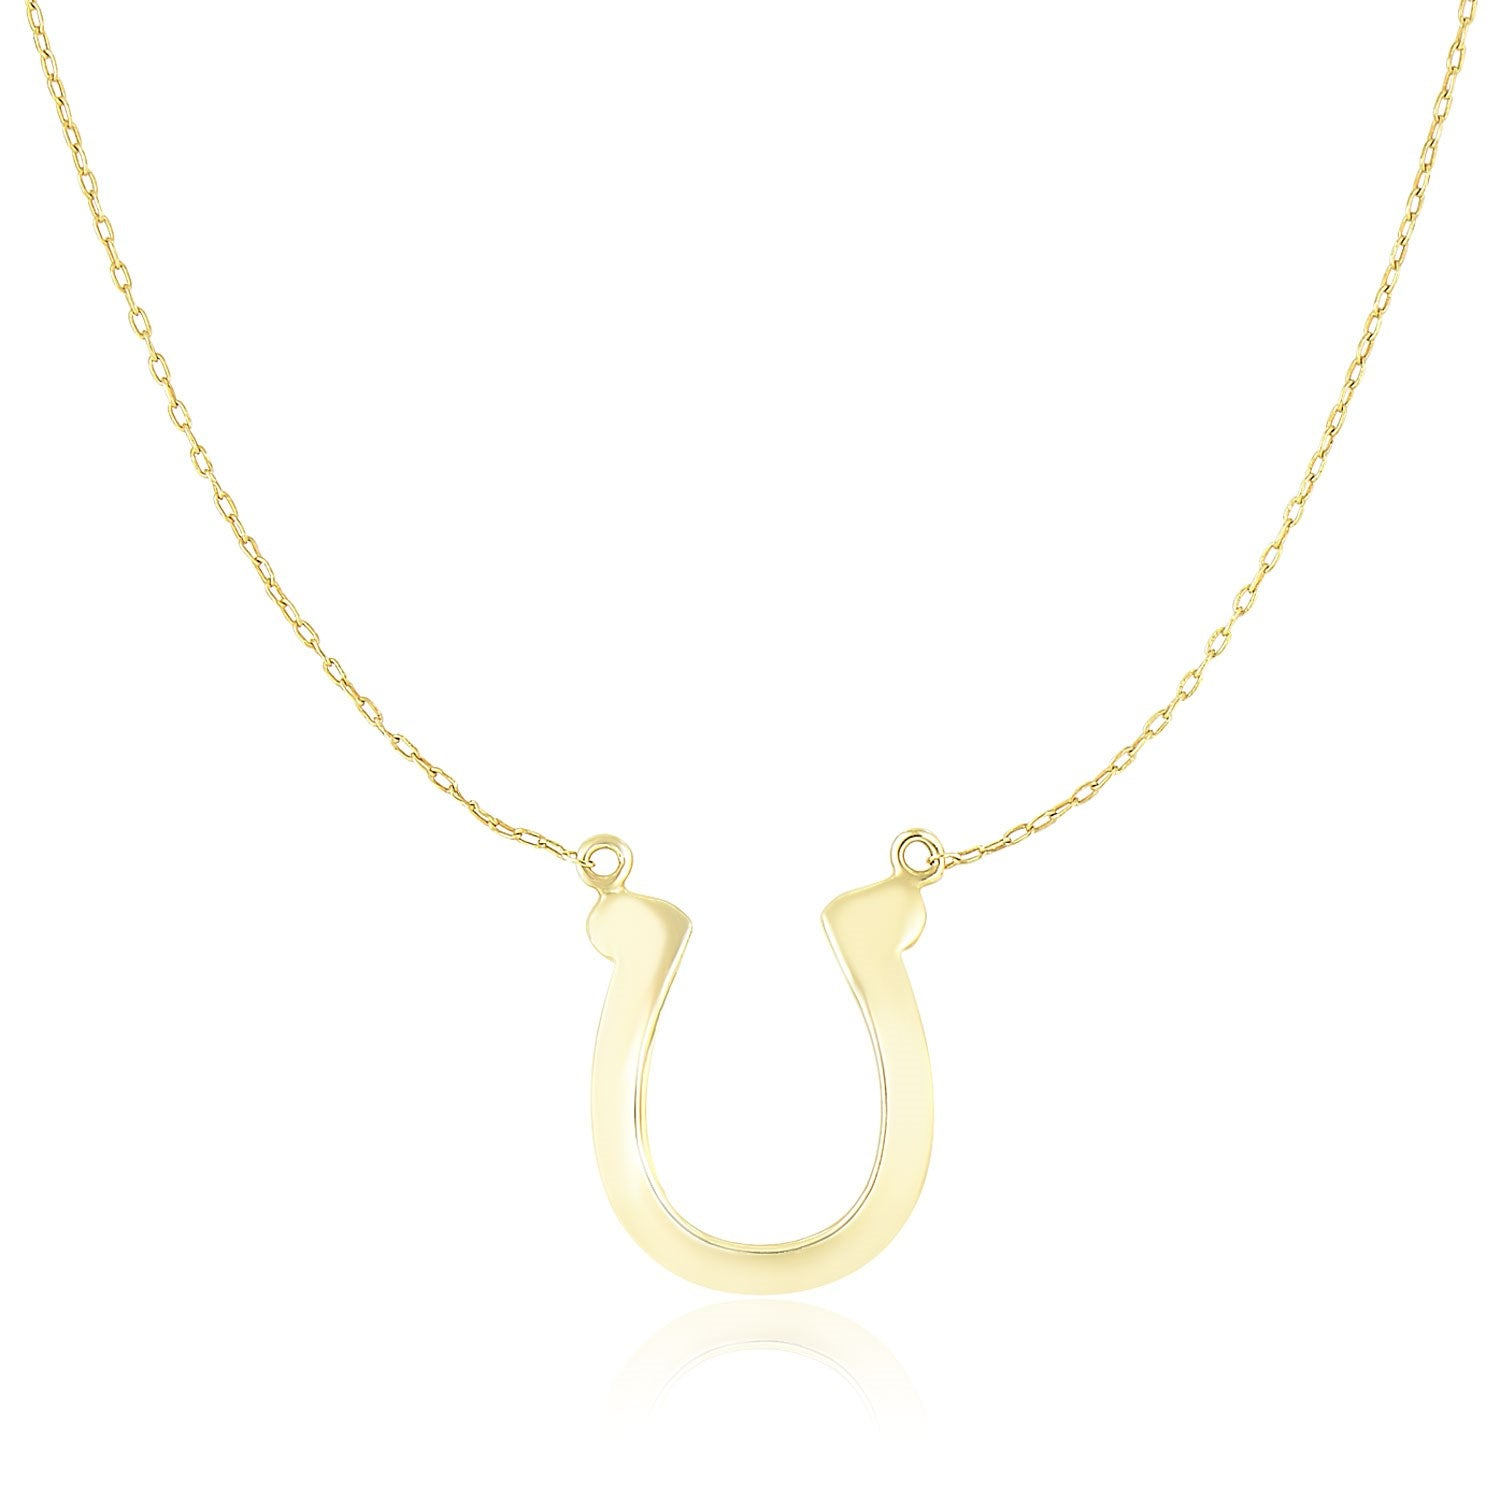 14K Yellow Gold Chain Necklace with Polished Horseshoe Charm